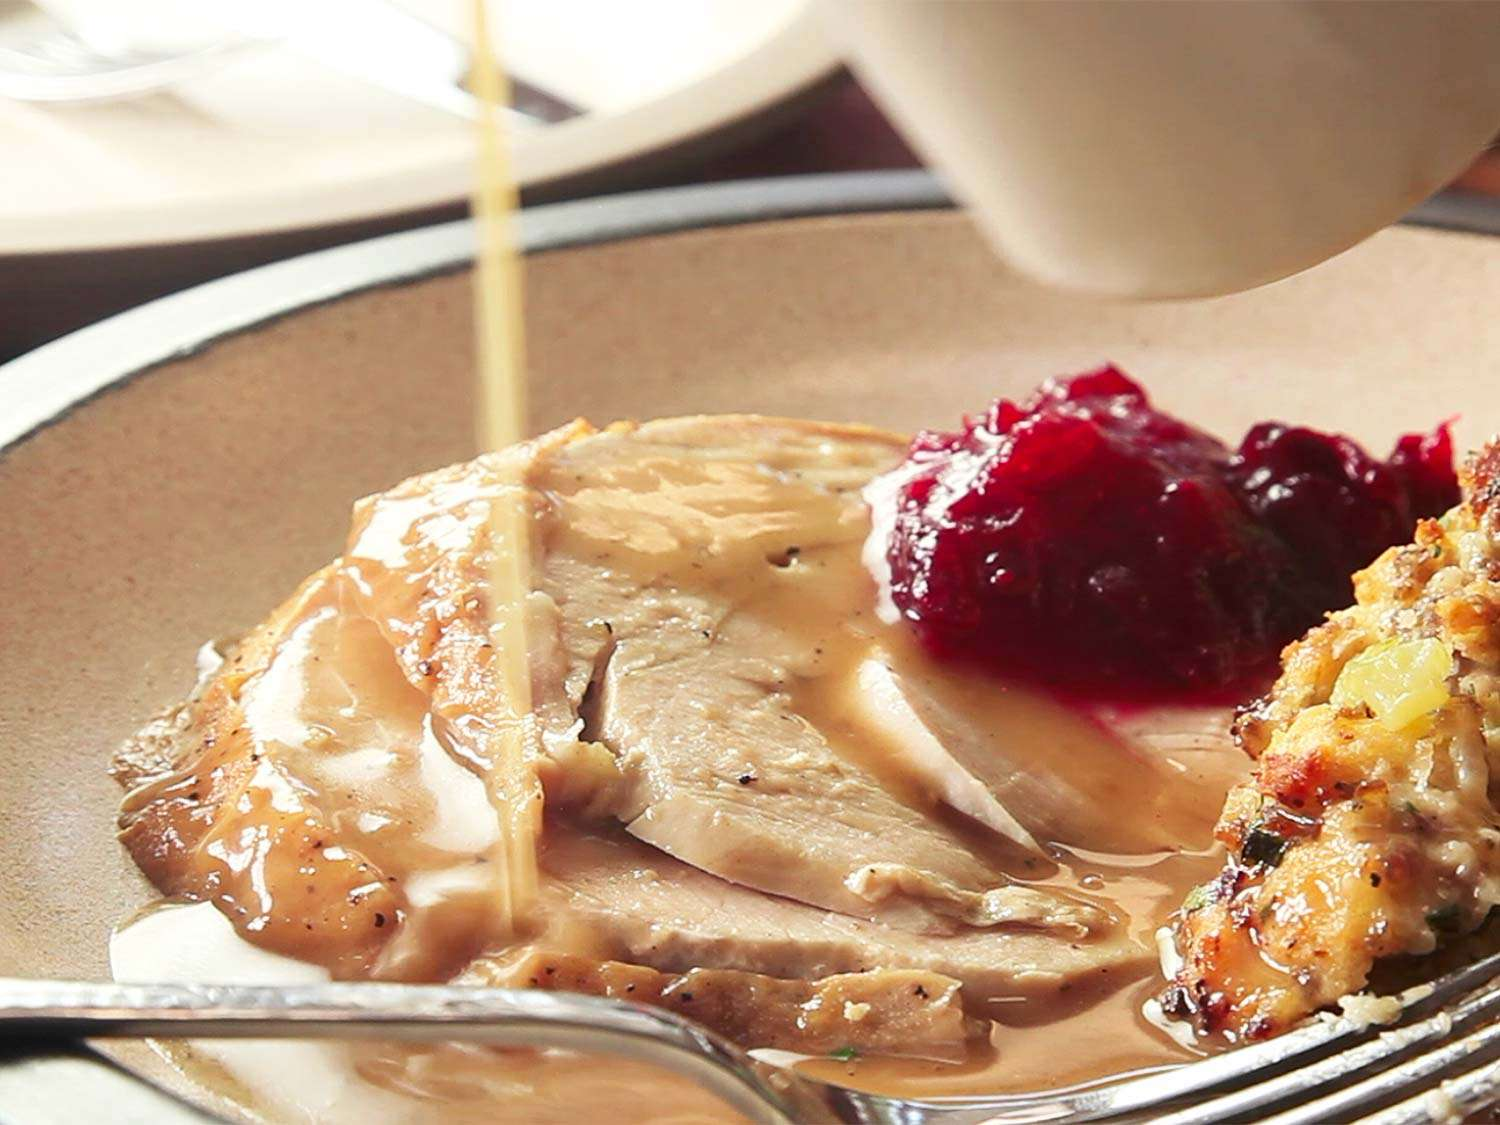 Pouring gravy from a pitcher over a plate of sliced roast turkey meat, cranberry sauce, and dressing.